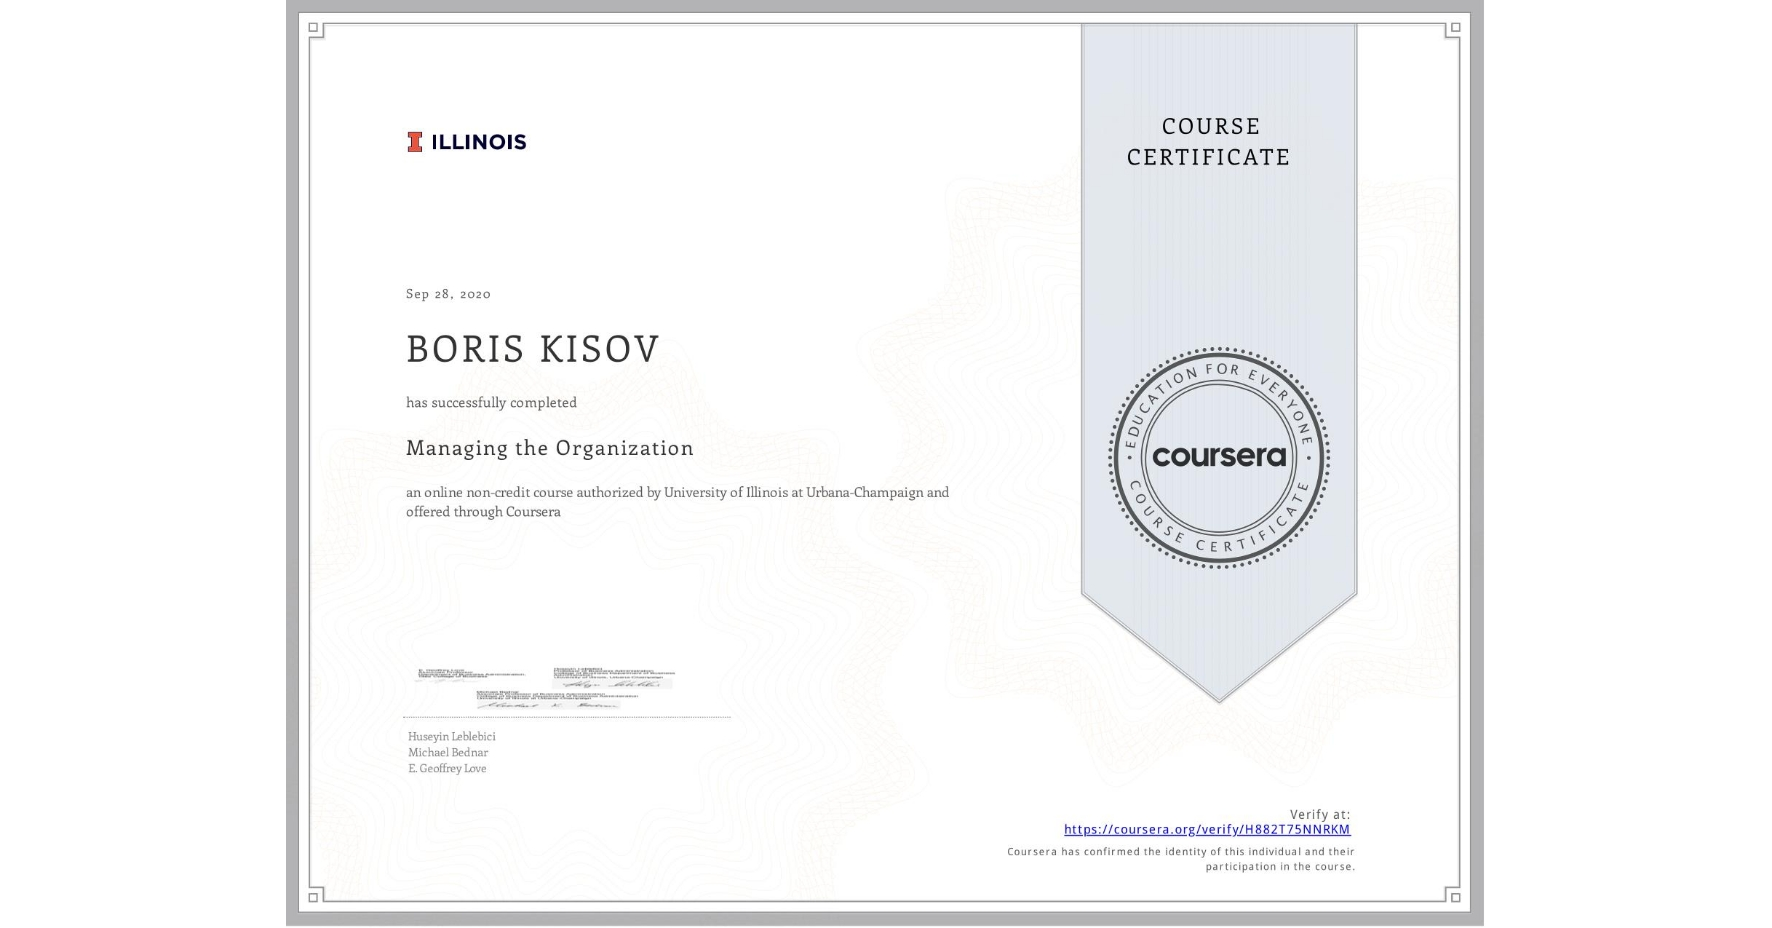 View certificate for BORIS KISOV, Managing the Organization, an online non-credit course authorized by University of Illinois at Urbana-Champaign and offered through Coursera